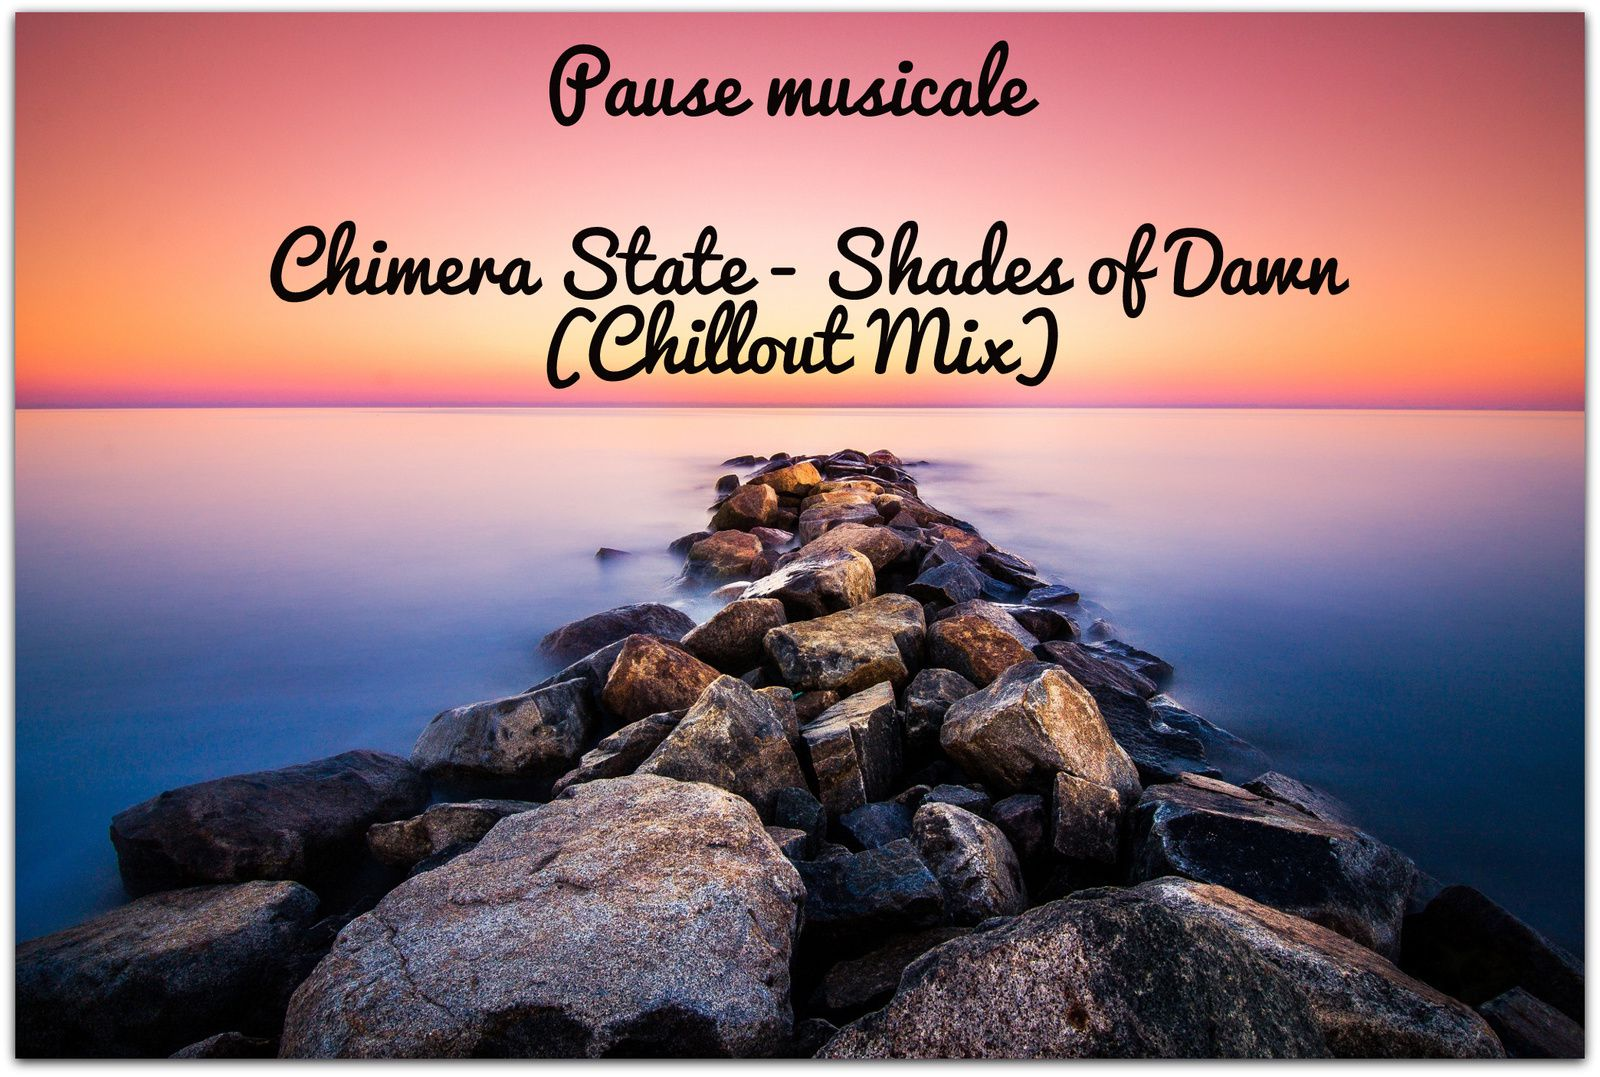 Pause musicale: Chimera State - Shades of Dawn